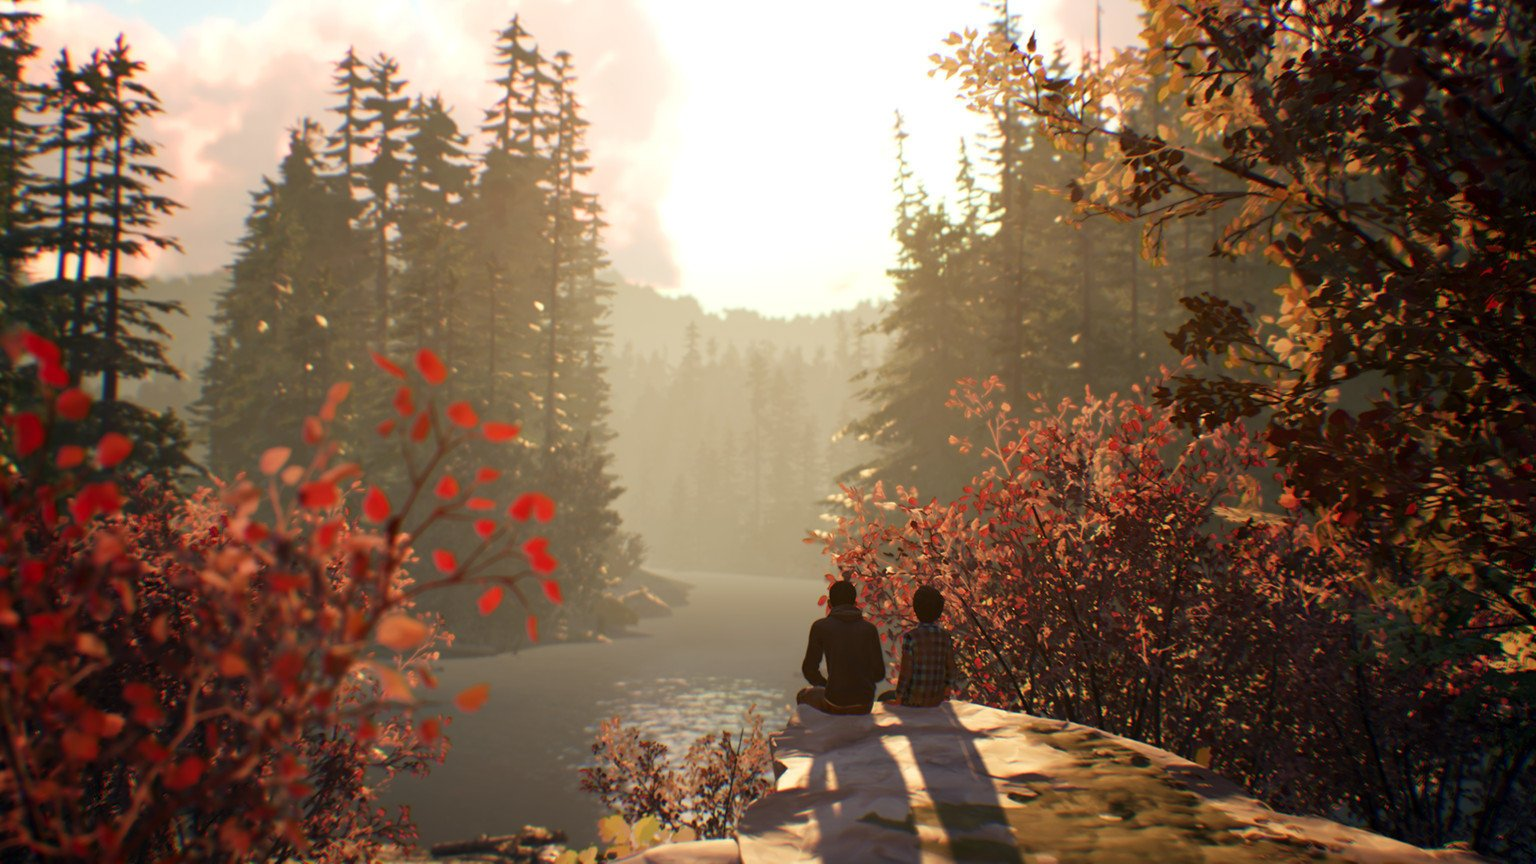 Catch up on indies you might have missed by grabbing games like Life is Strange 2 on the PS Store during Black Friday 2019.